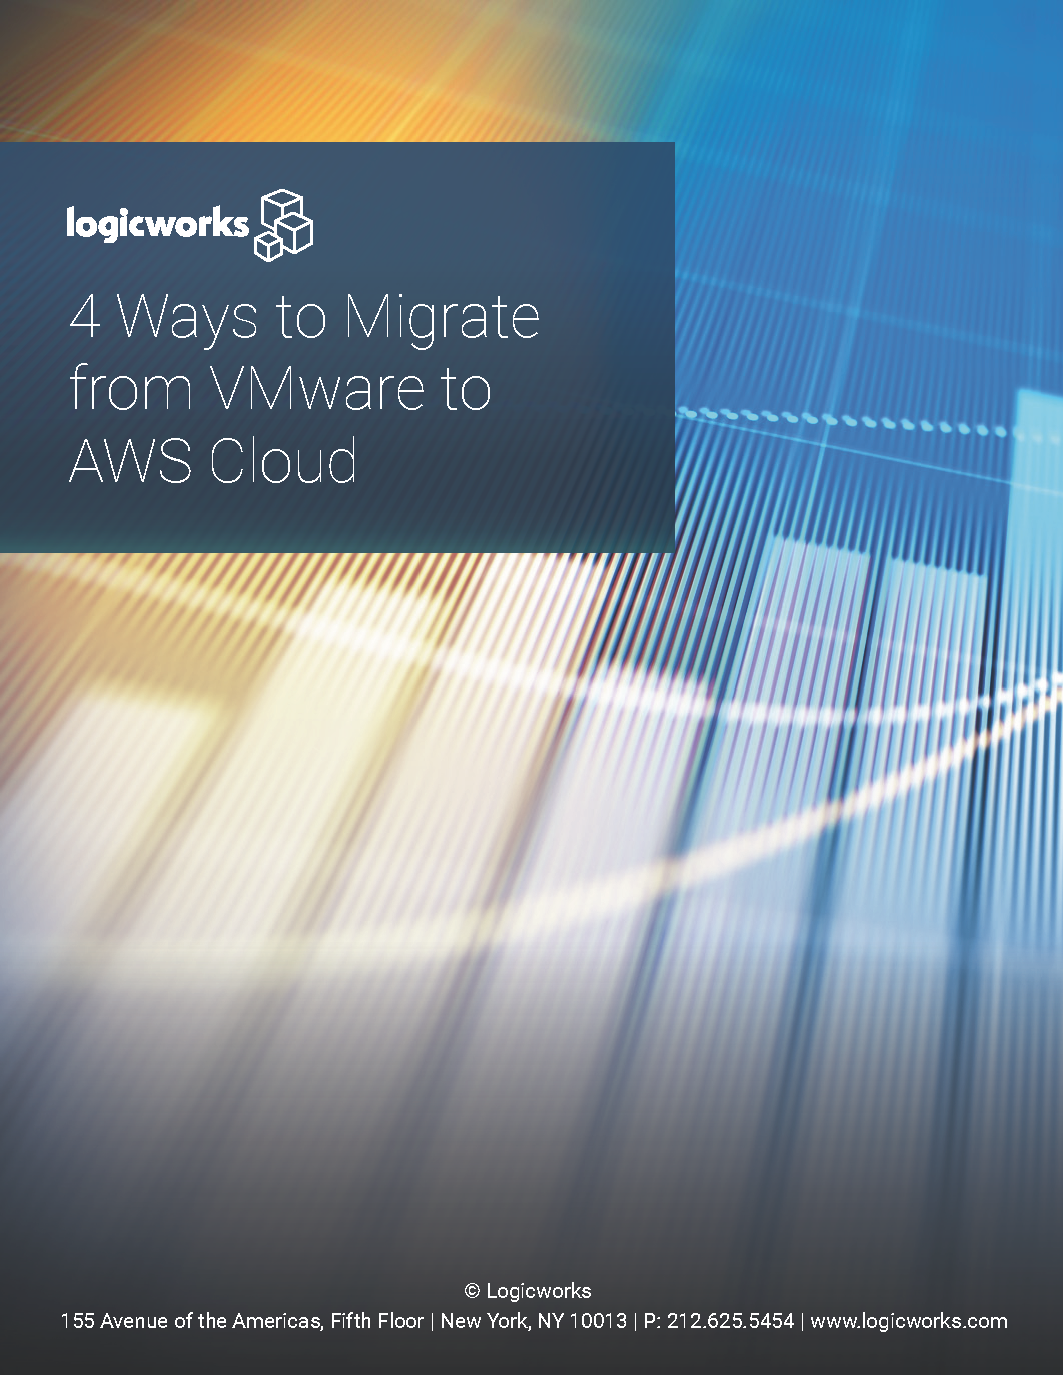 Logicworks eBook - 4 Ways to Migrate from VMware to AWS